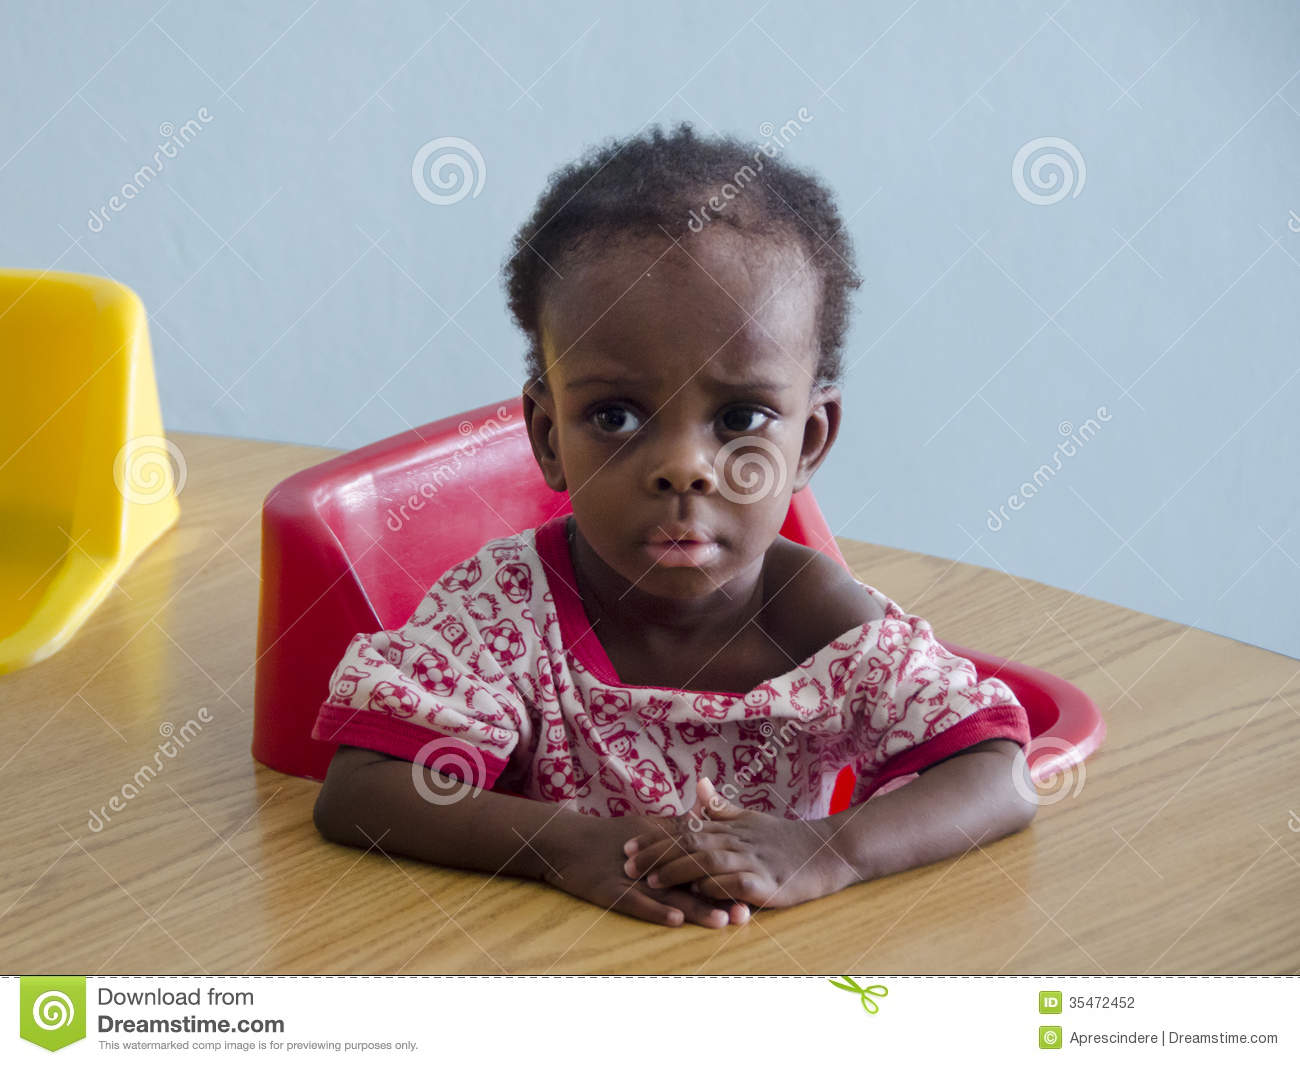 Orphan Girl Suffers Effects Drought,famine & Poverty Uganda,Africa.